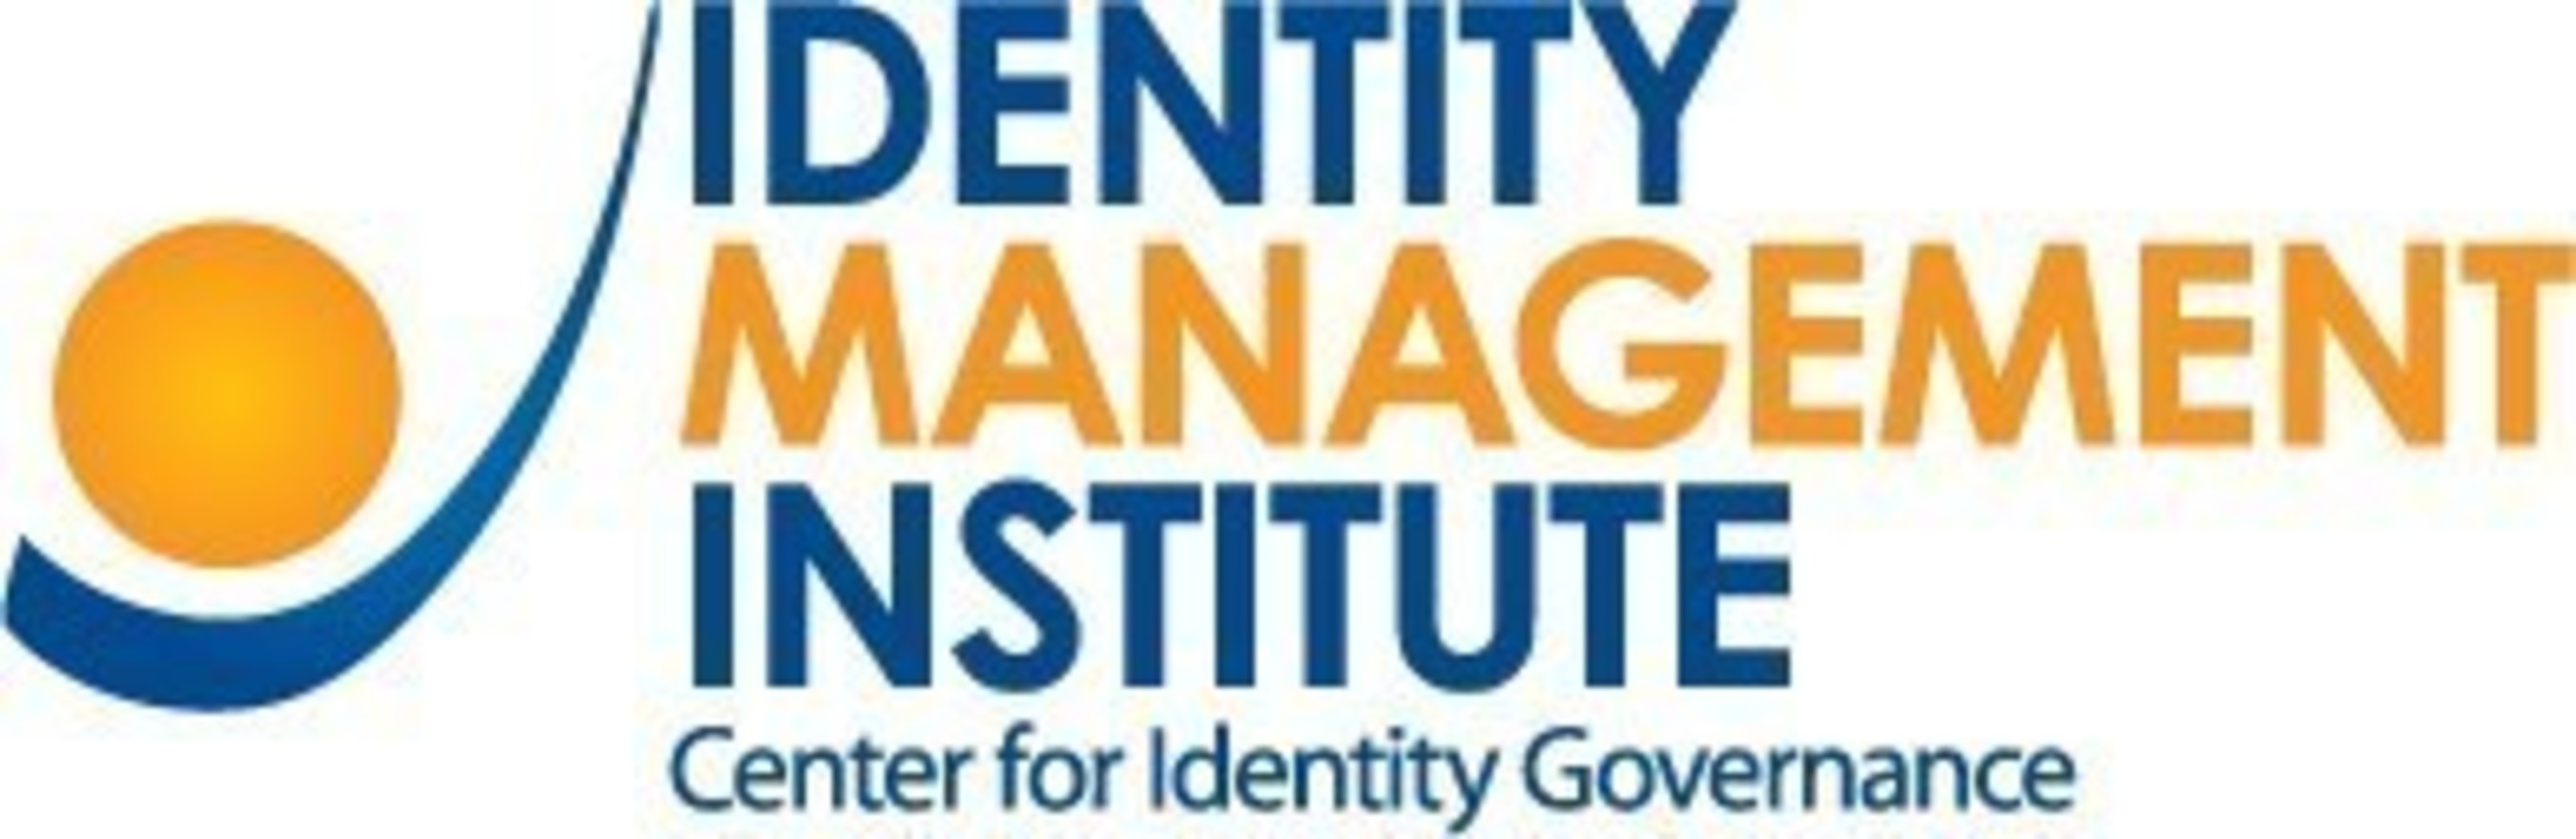 "Identity Management Institute(R) (IMI) is a leading global organization which provides thought leadership, training, and processional certification to its global members. IMI is dedicated to governance, risk management, and compliance in the field of identity and access management. IMI was established to help redefine ""identity management"" in order to address all identity risks in the evolving digital world, and support professionals collaborate and manage the identity risks facing their employees, customers, and organizations."